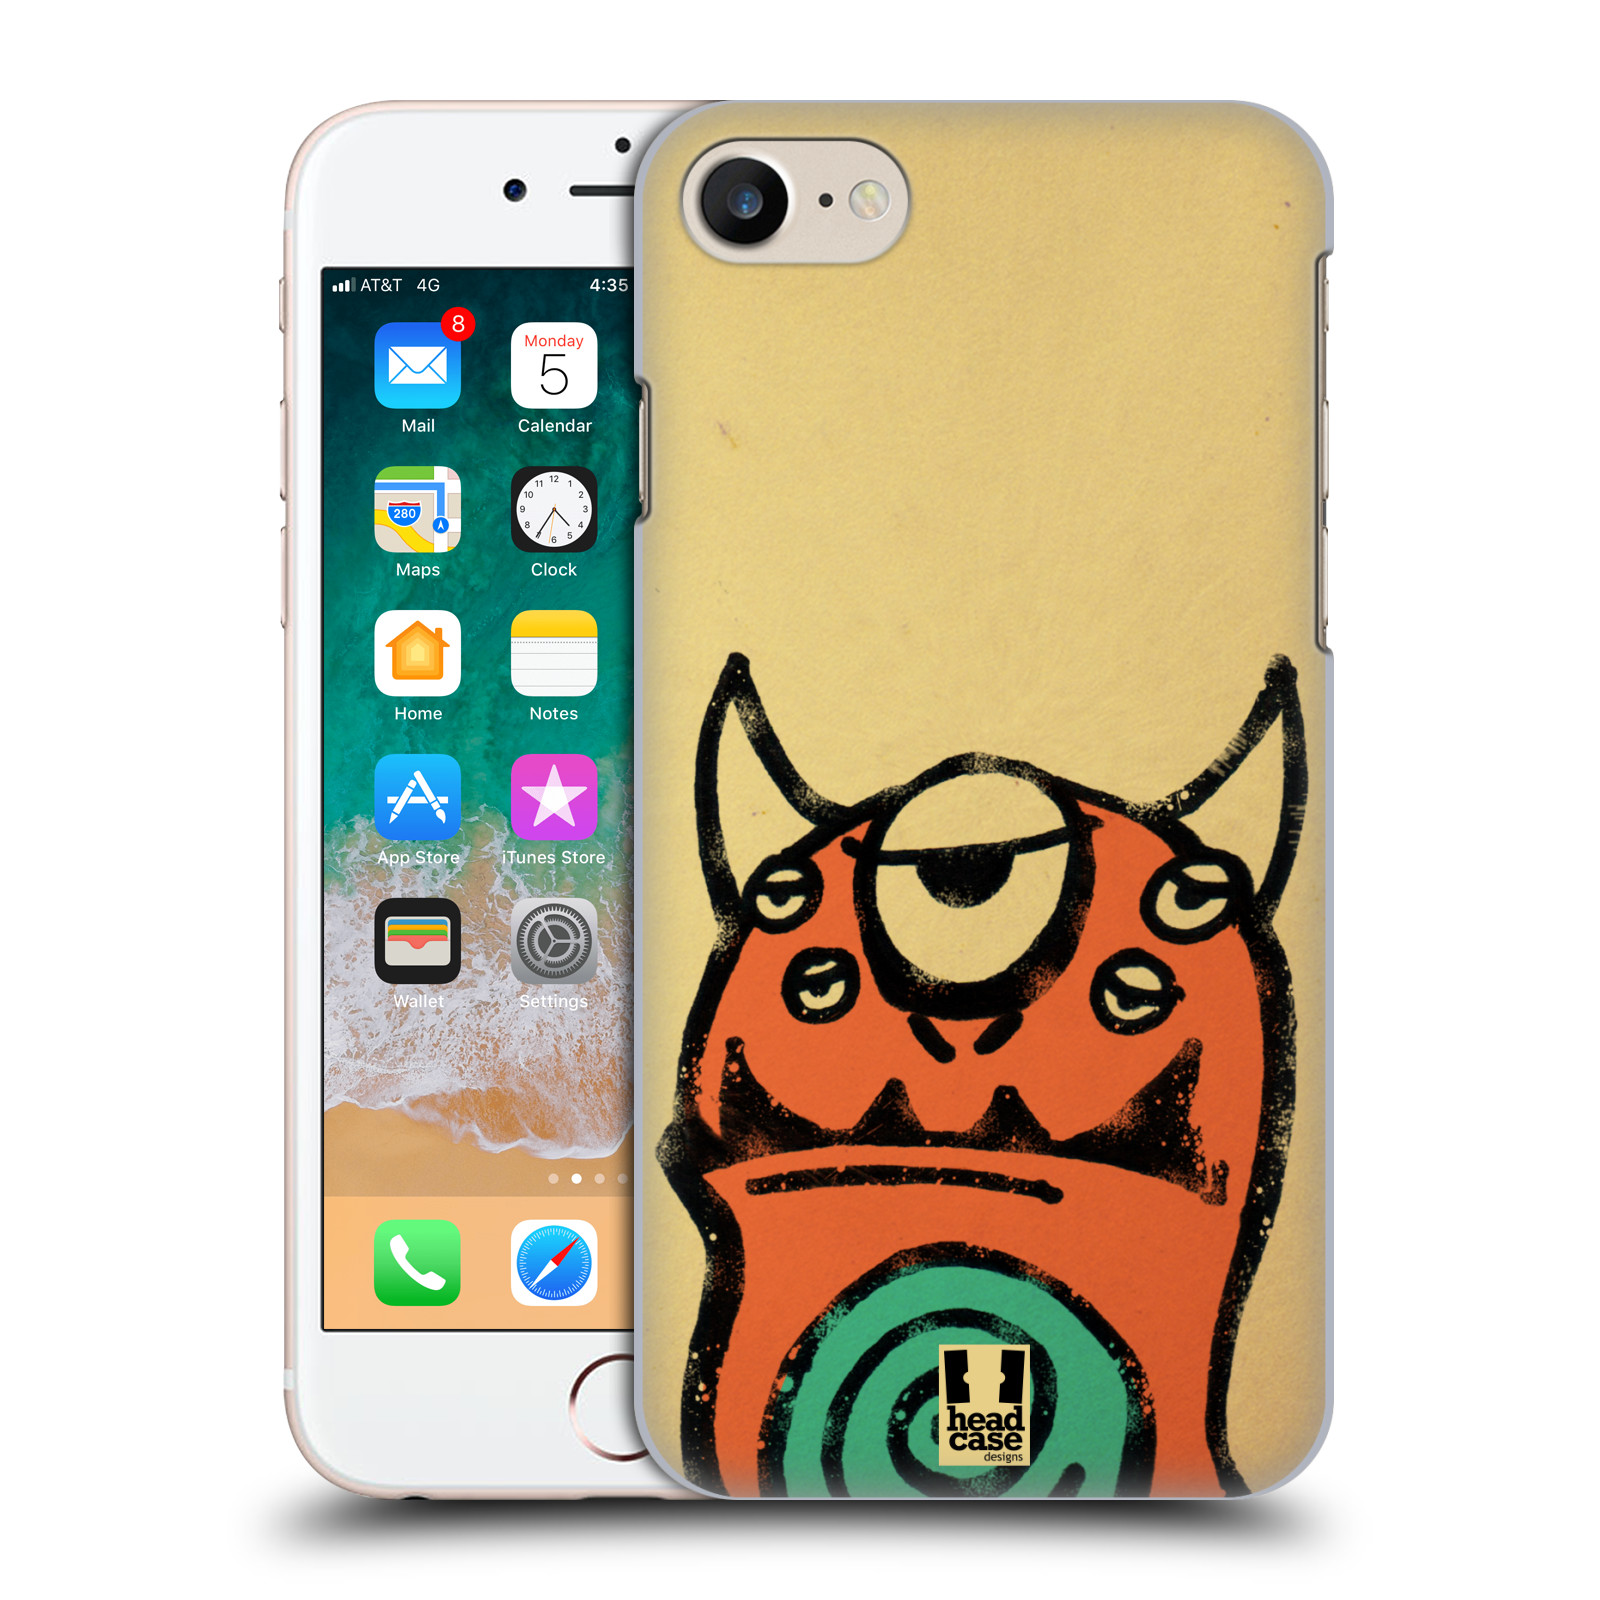 HEAD CASE DESIGNS DOODLE FACE MONSTERS HARD BACK CASE FOR APPLE iPHONE 7